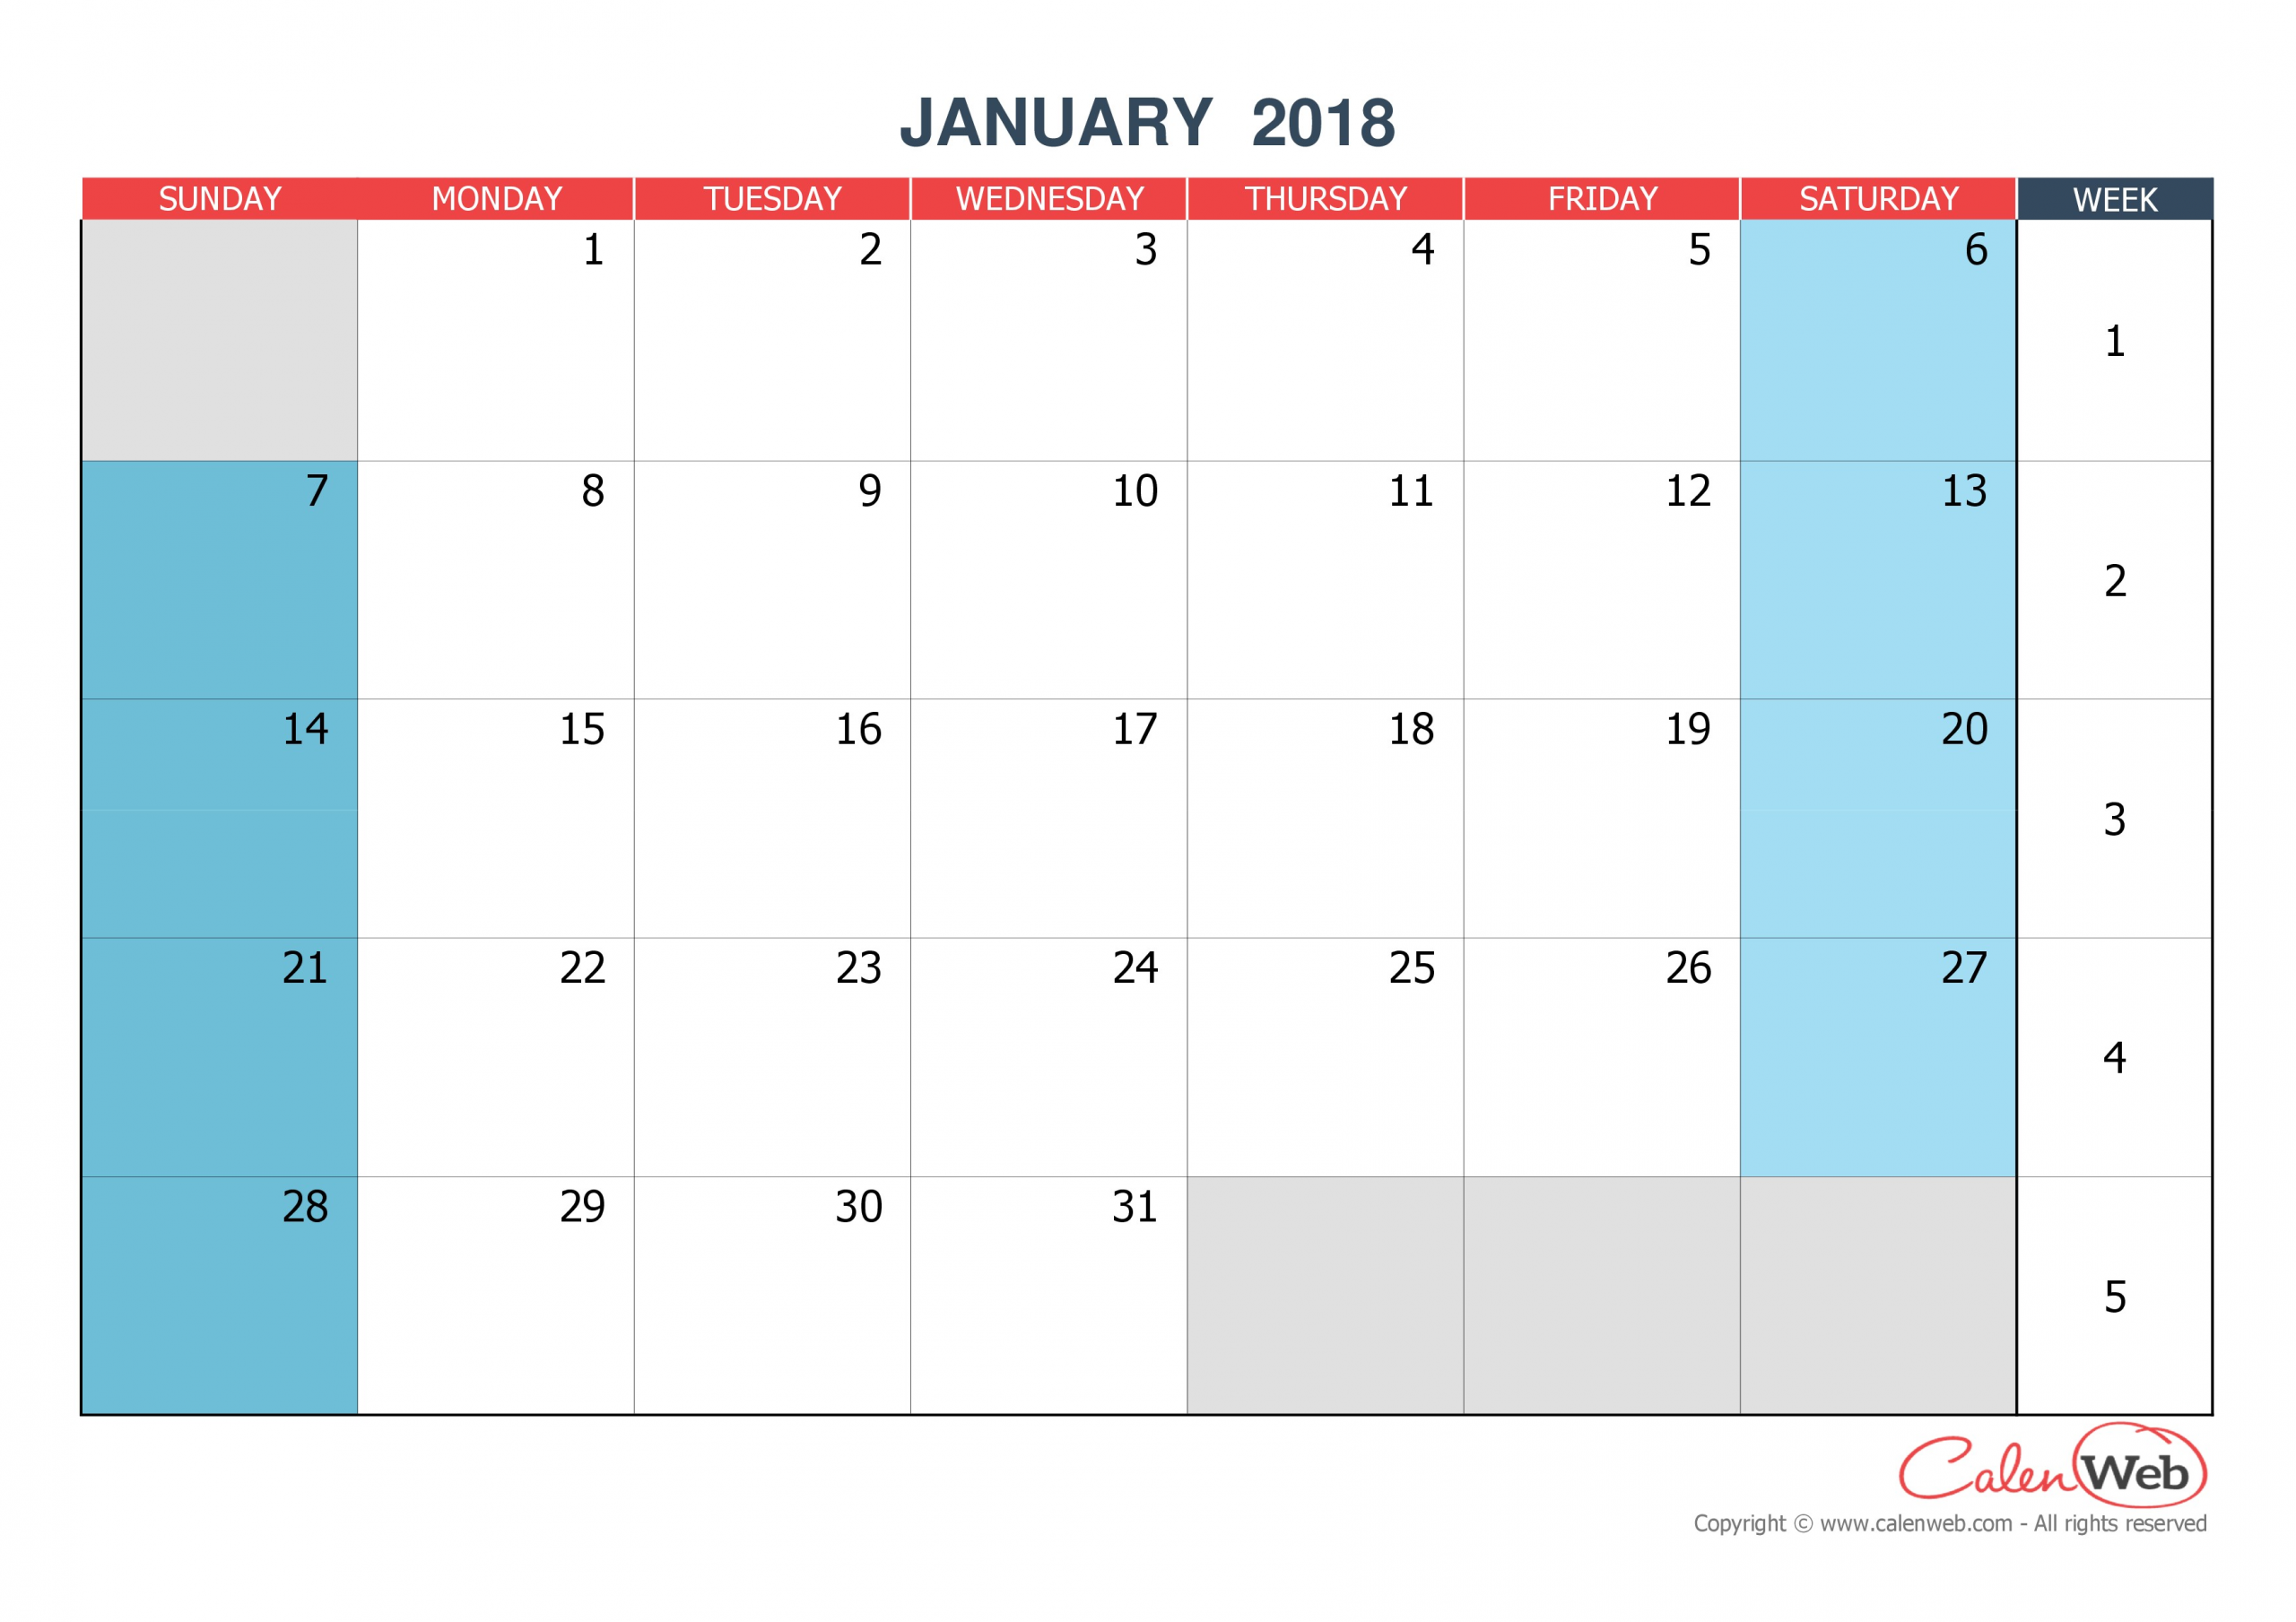 Calendario 2020 Jan Recientes January Calendar Month andoneianstern Of Calendario 2020 Jan Más Populares Free Excel Calendar Templates Monthly Template Ic 2020 S